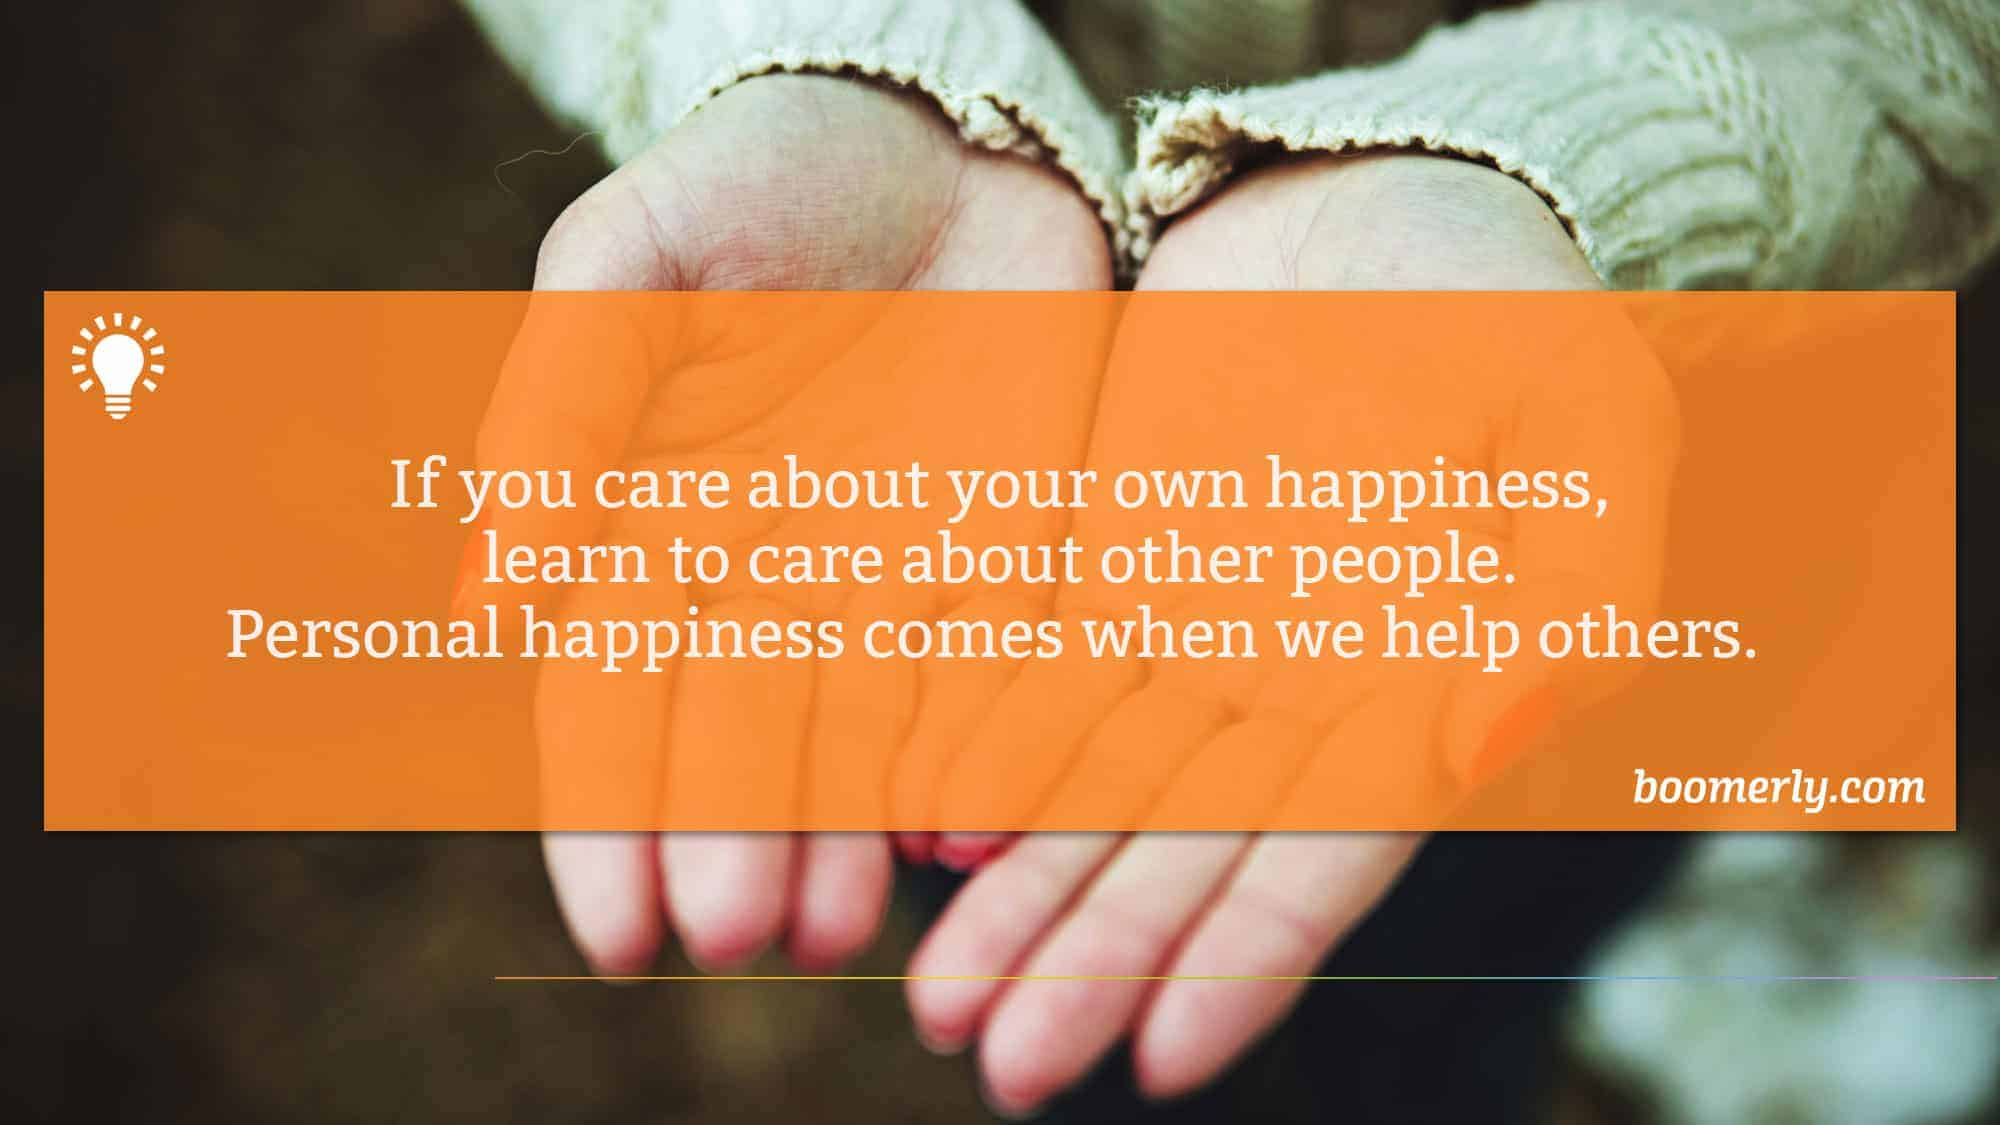 If you care about your own happiness, learn to care about other people. Personal happiness comes when we help others.